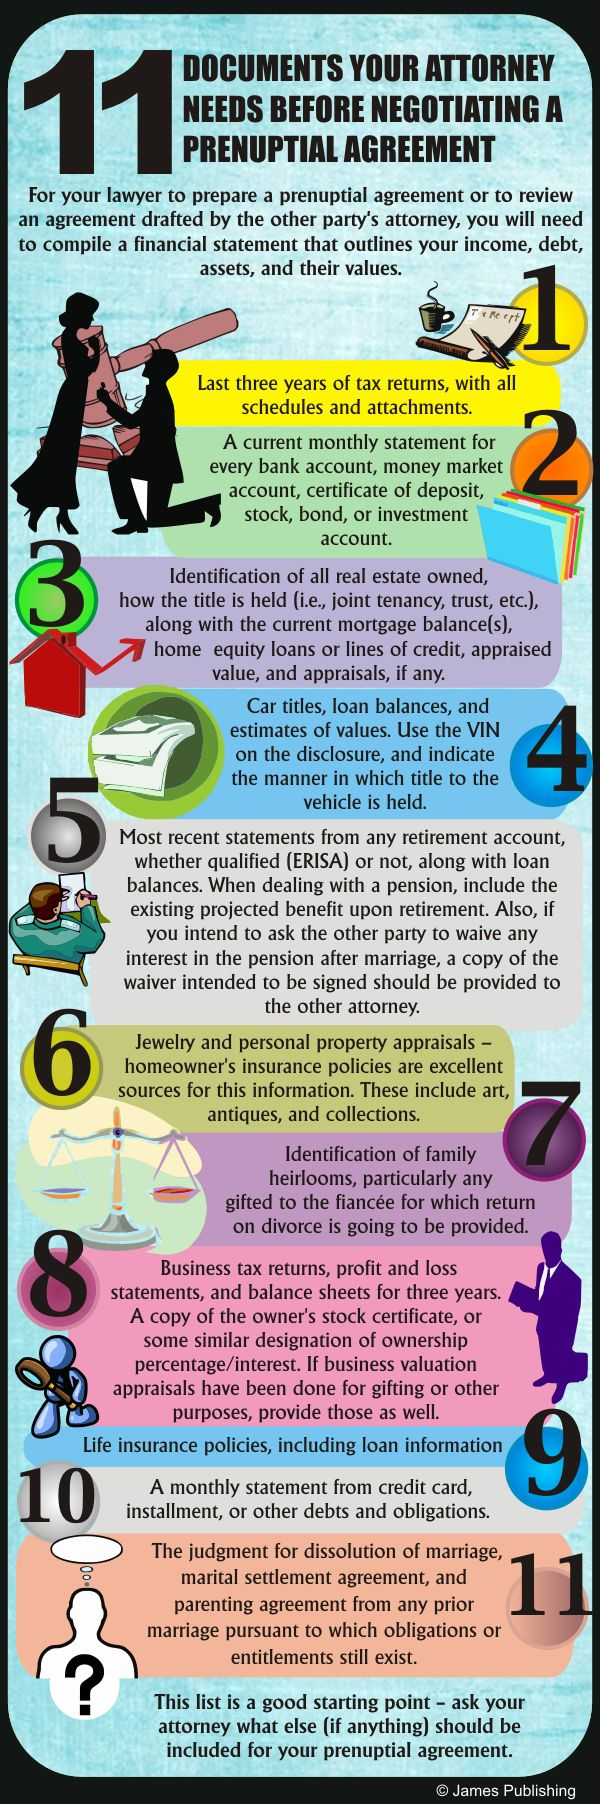 What Is Included In A Prenuptial Agreement Smith Strong Plc